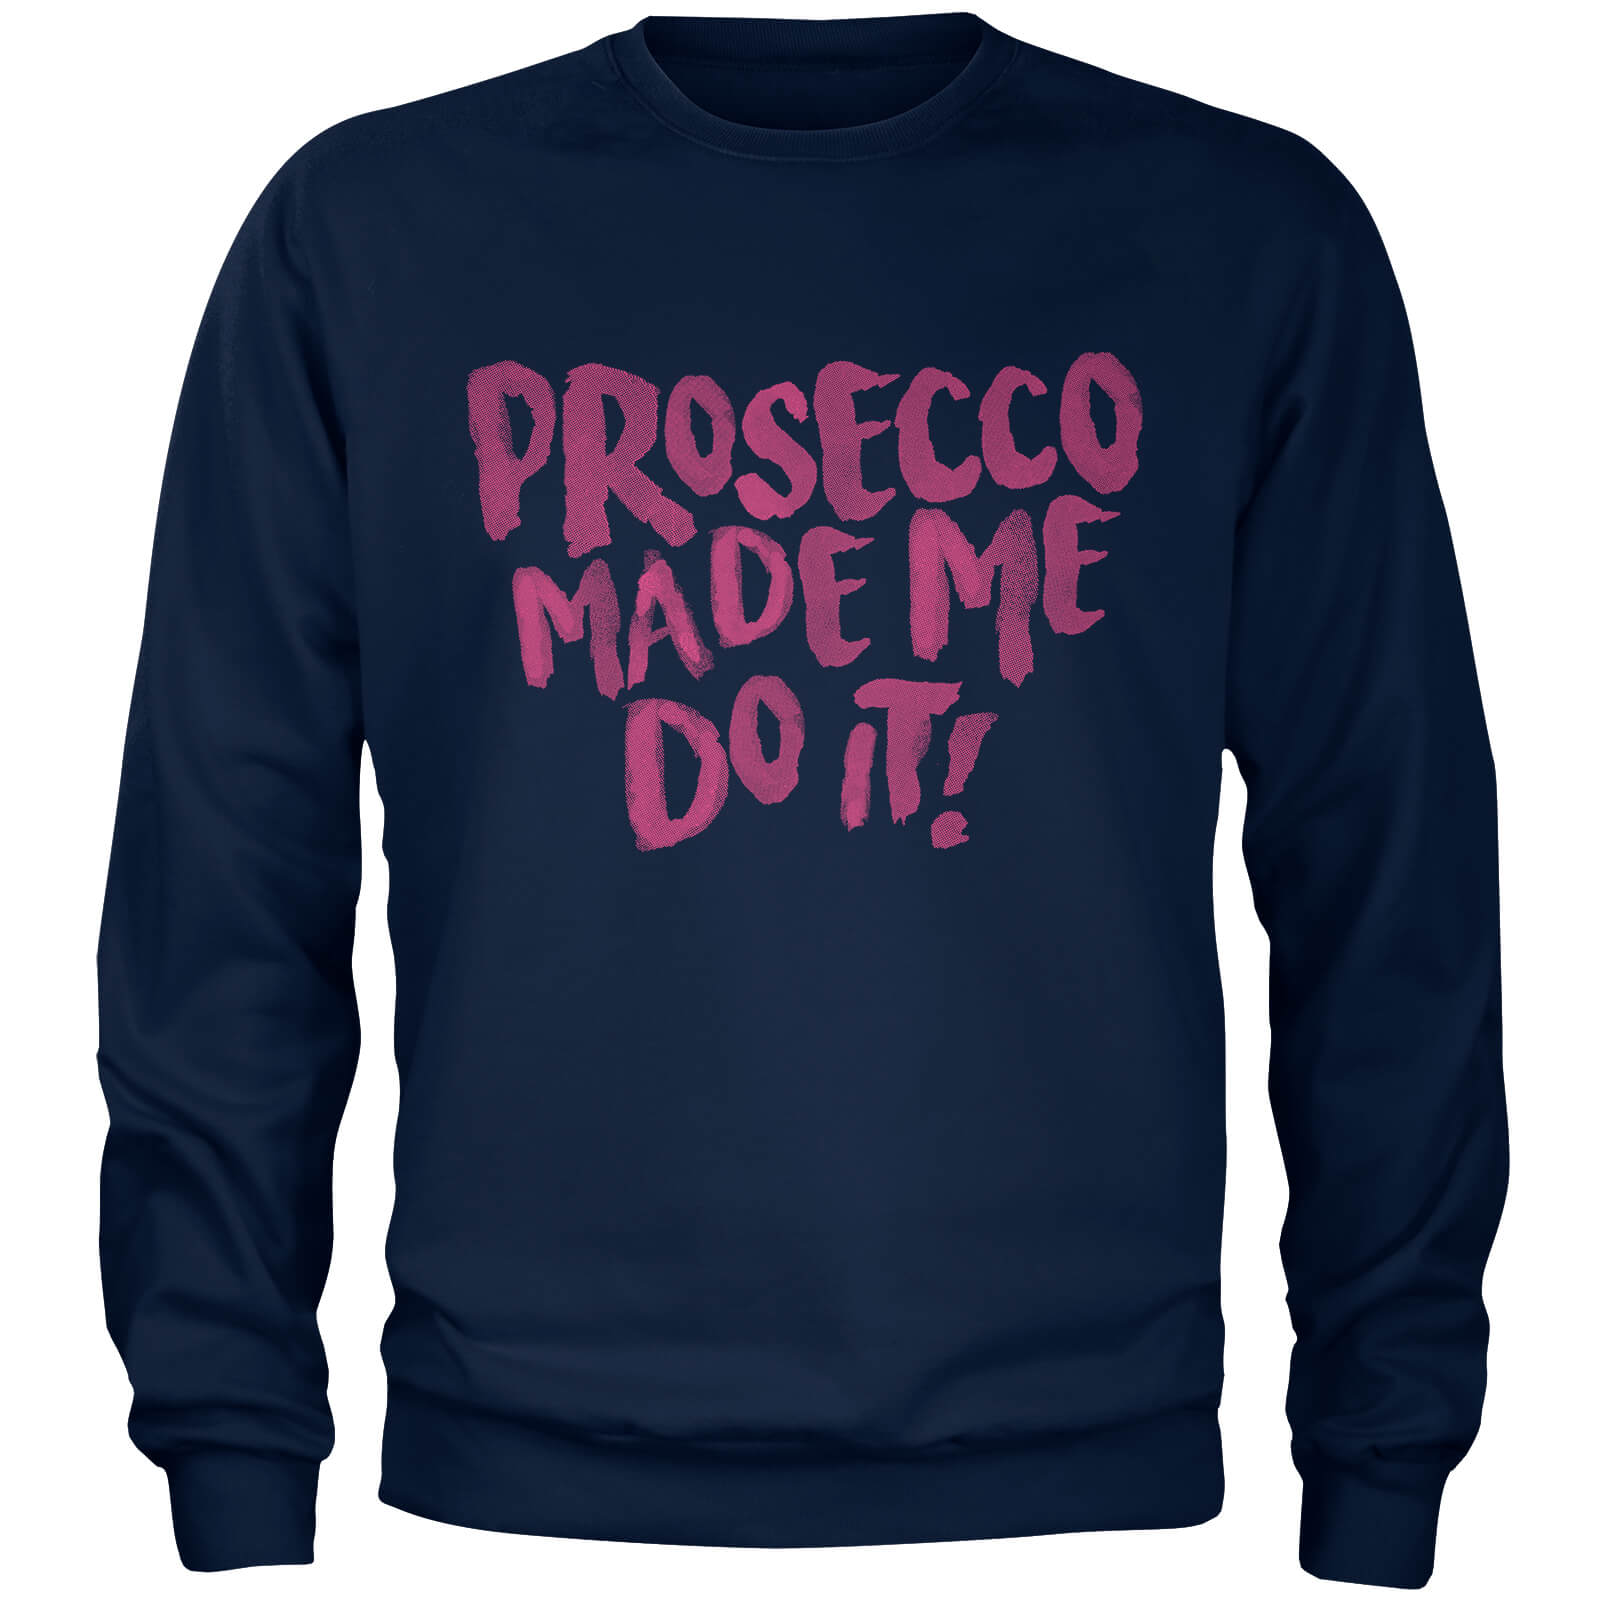 Prosecco Made Me Do It Navy Sweatshirt